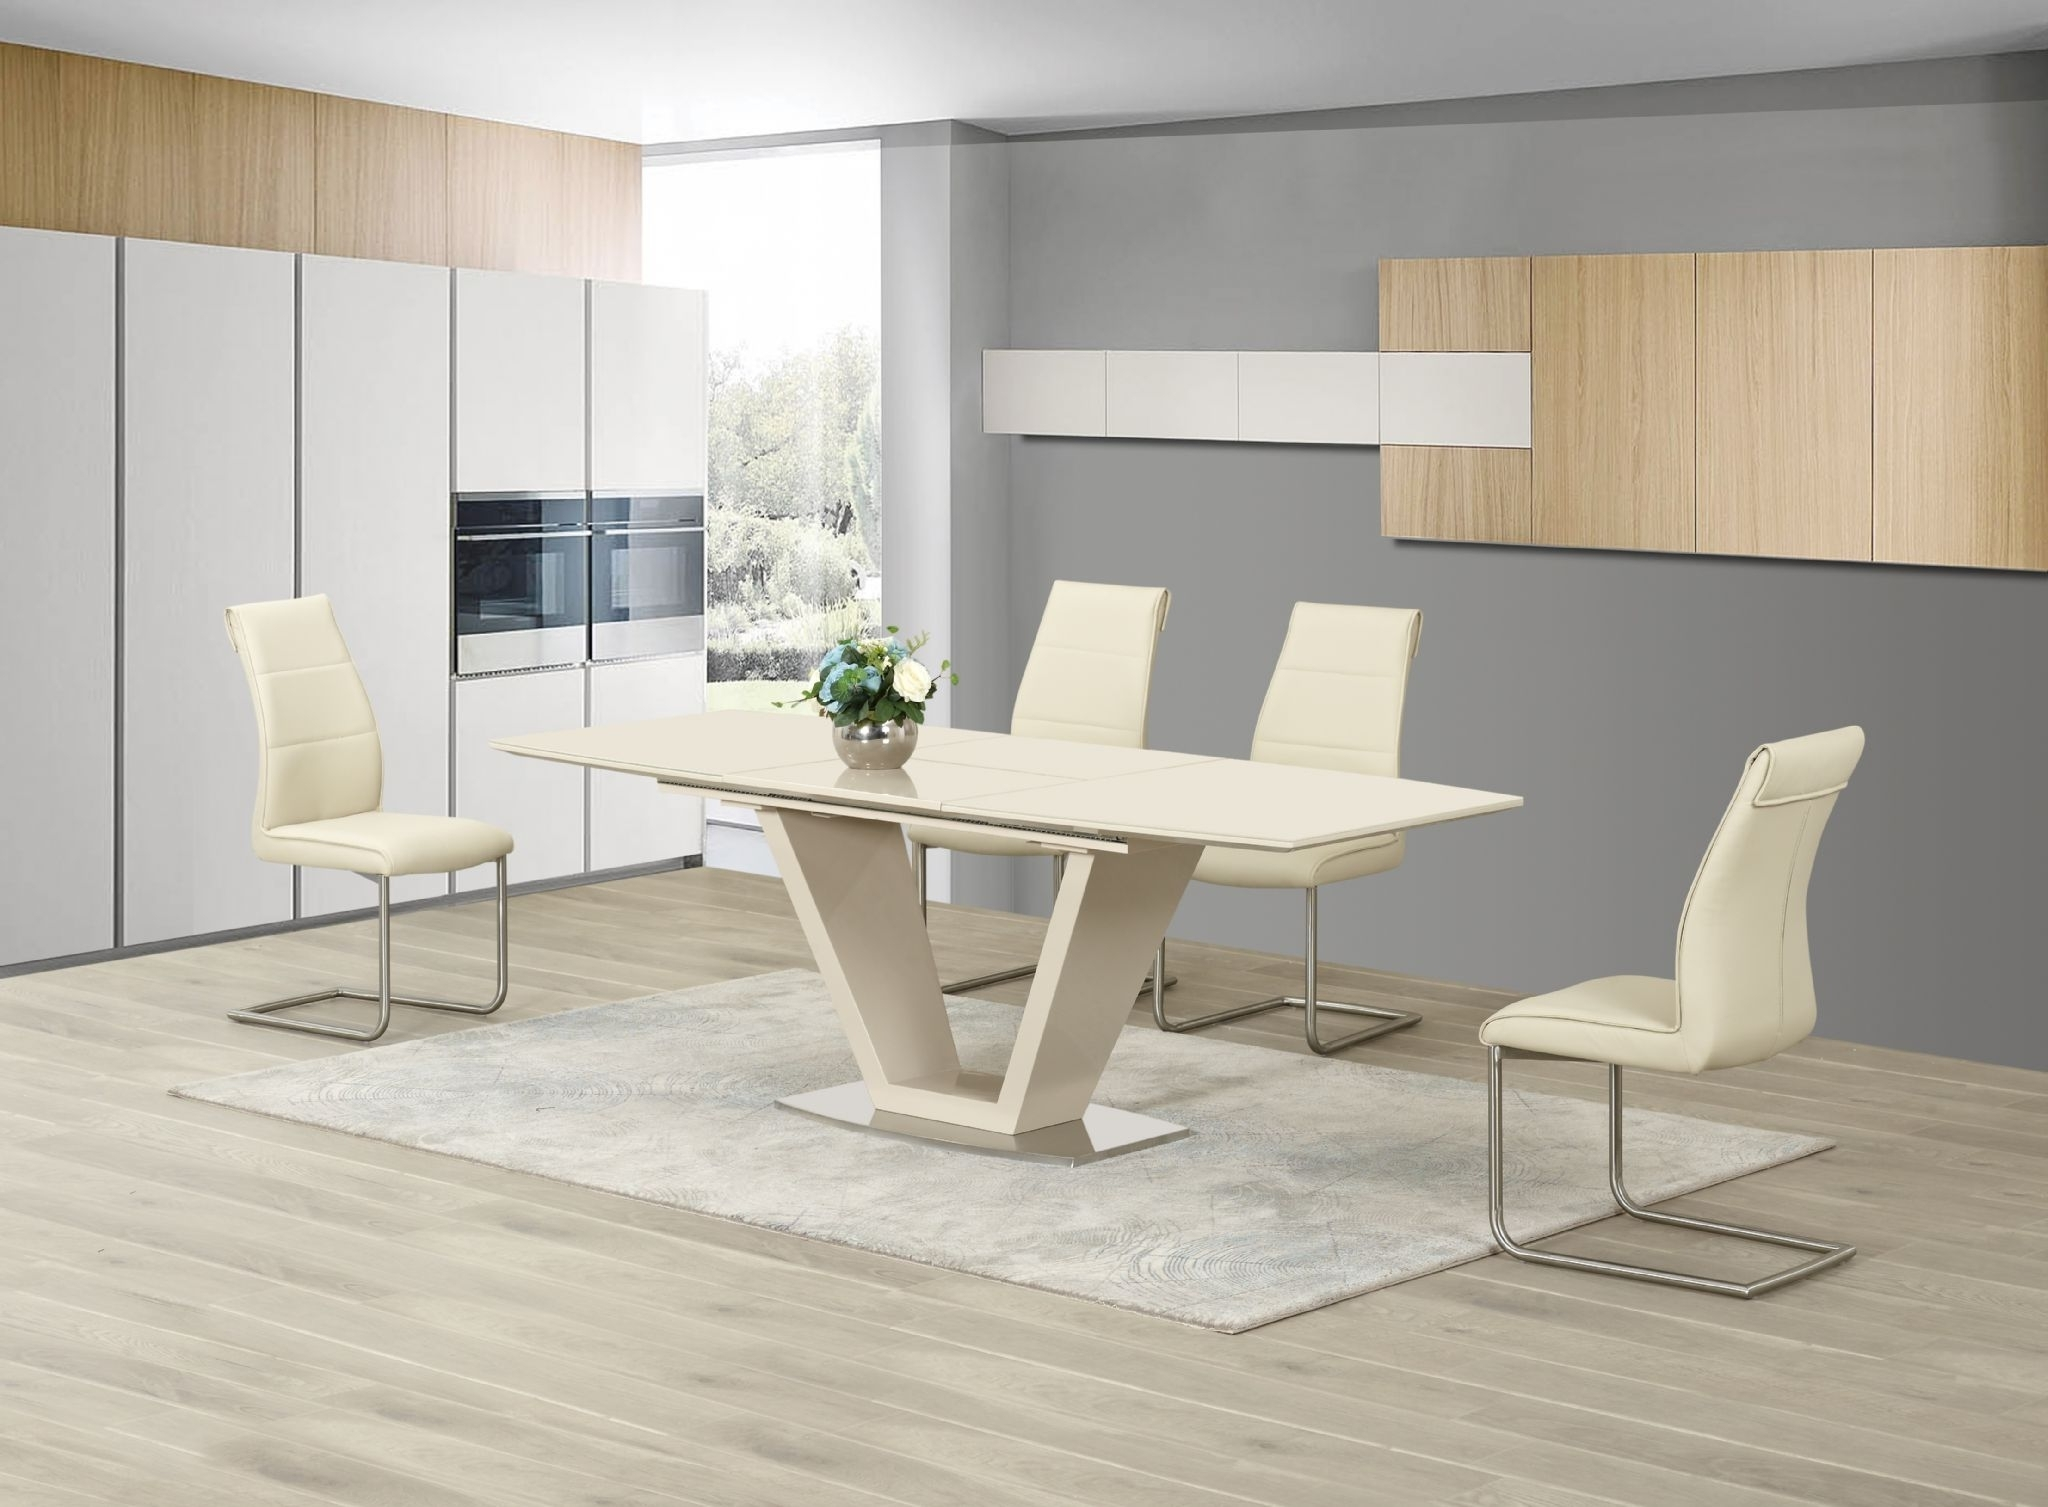 Ga Loriga Cream Gloss Glass Designer Dining Table Extending 160 220 Pertaining To Best And Newest Extendable Dining Tables 6 Chairs (View 12 of 25)